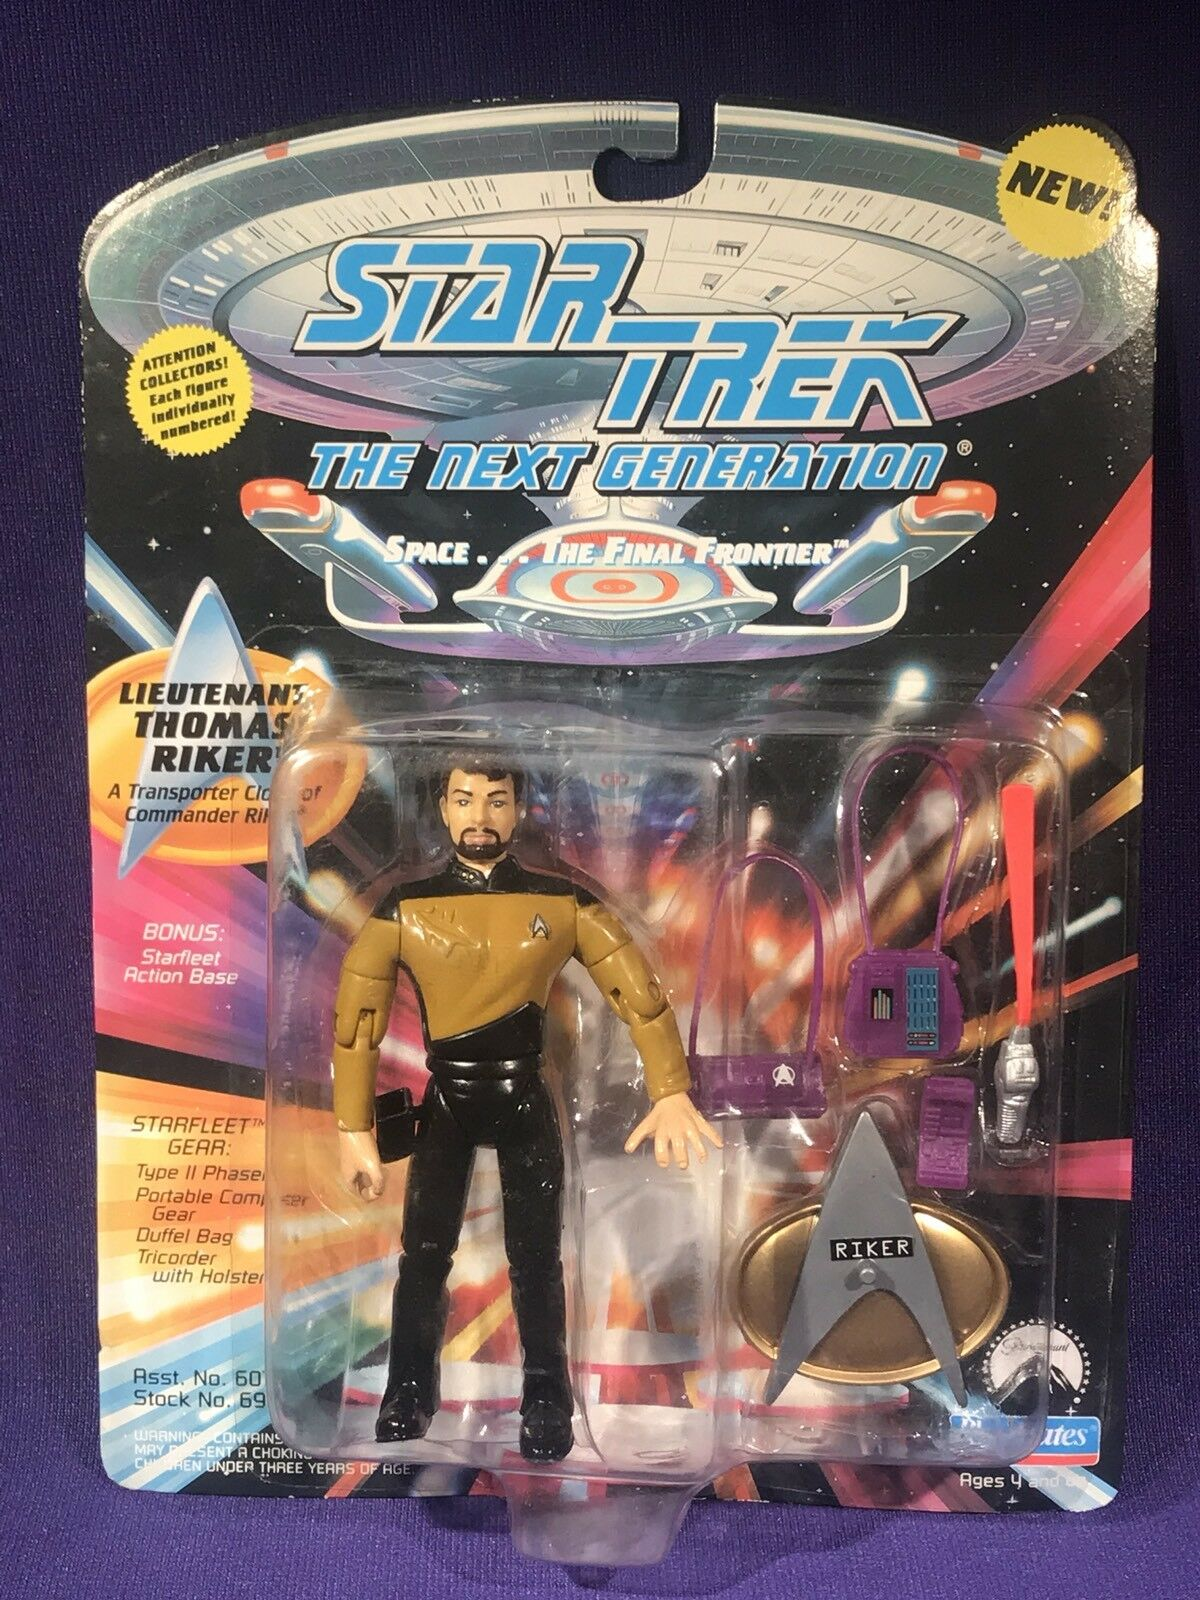 Die spielkameraden star trek tng next generation thomas riker william klon moc - 5  - figur